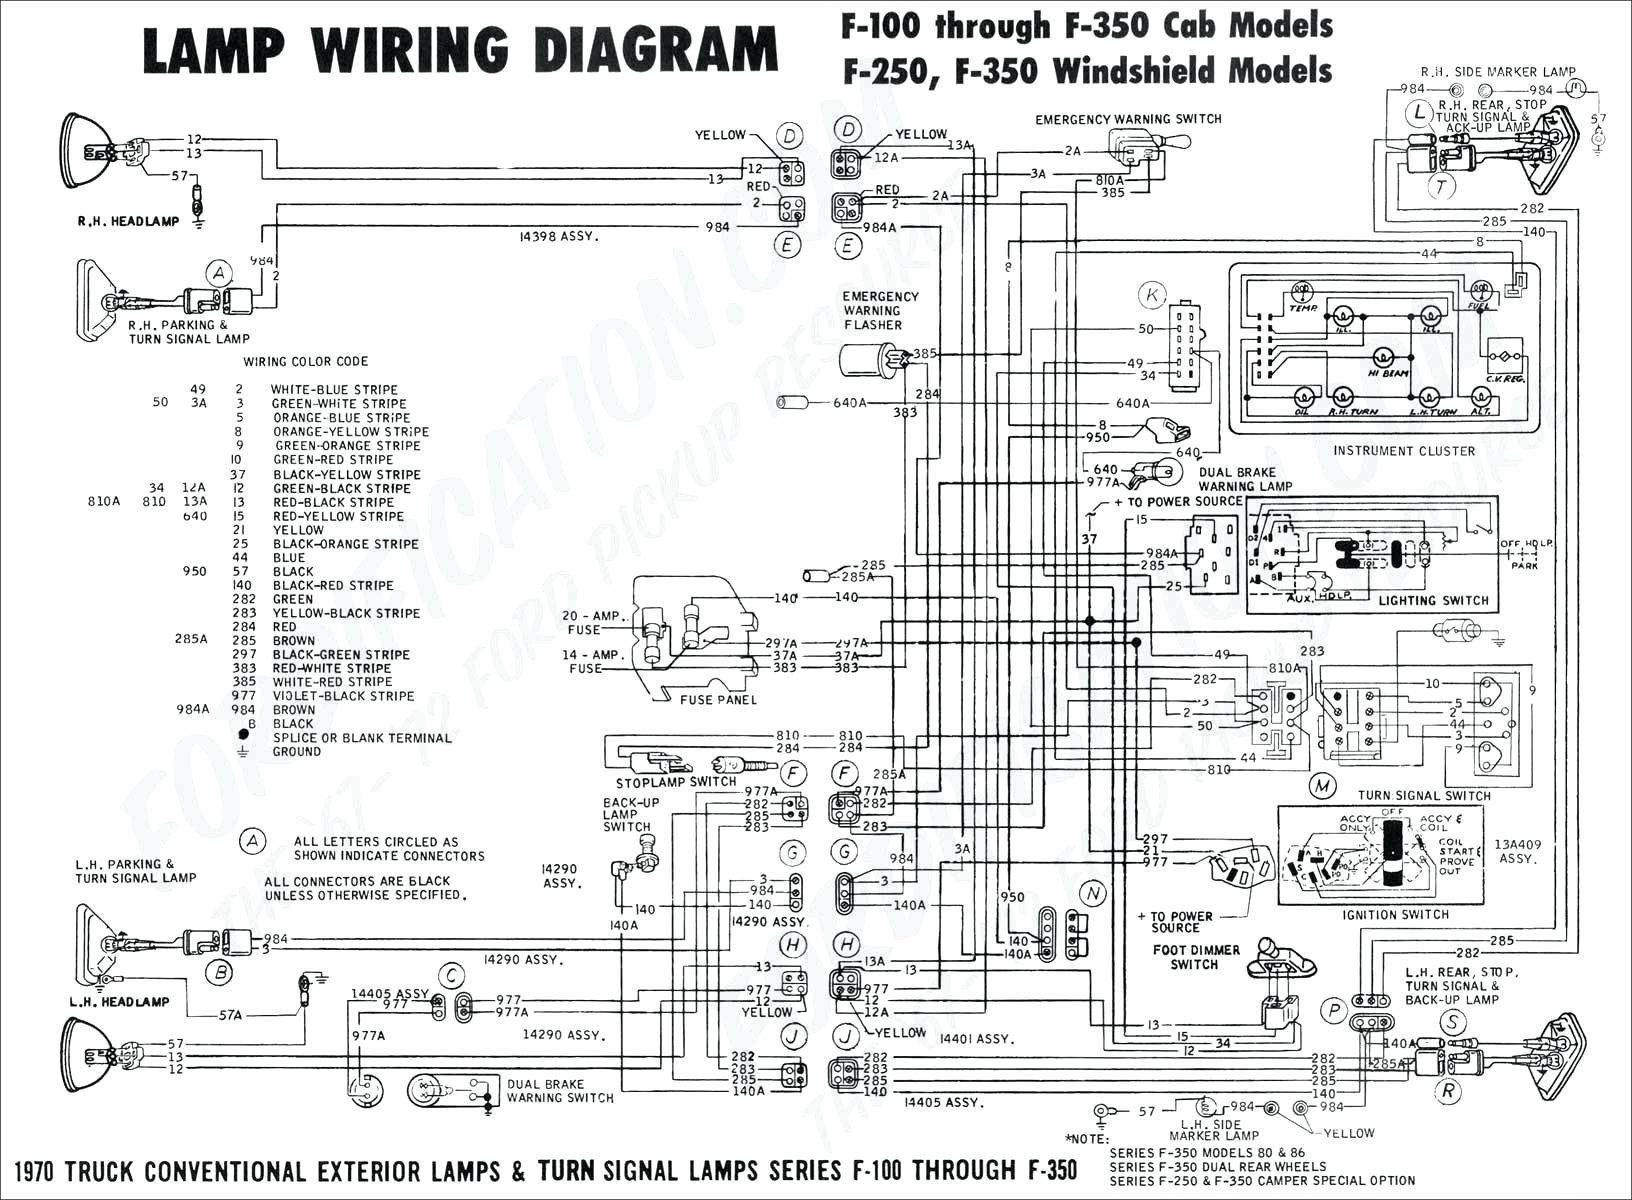 2005 town and Country Starer Wireing Diagram Ethernet End Wiring Diagram Of 2005 town and Country Starer Wireing Diagram